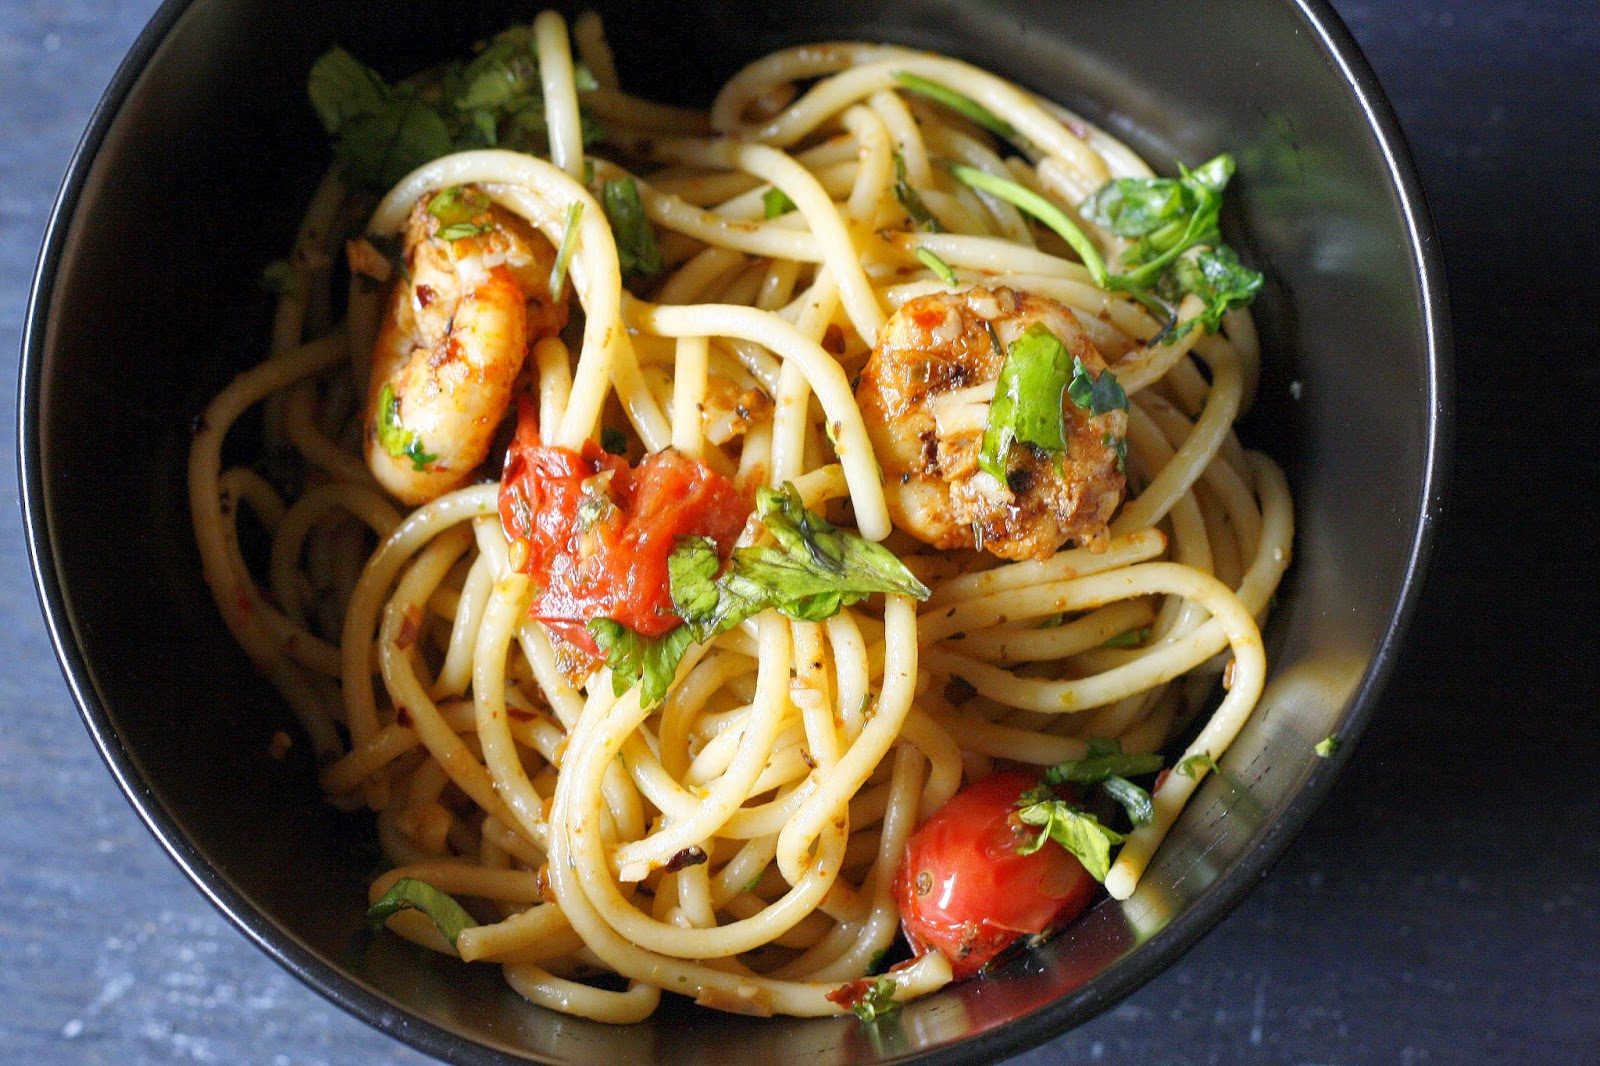 The perfect mid week dinner..basic pasta with garlic and olive oil, and with shrimps as an added bonus. Make it vegetarian by simply adding cherry tomatoes.